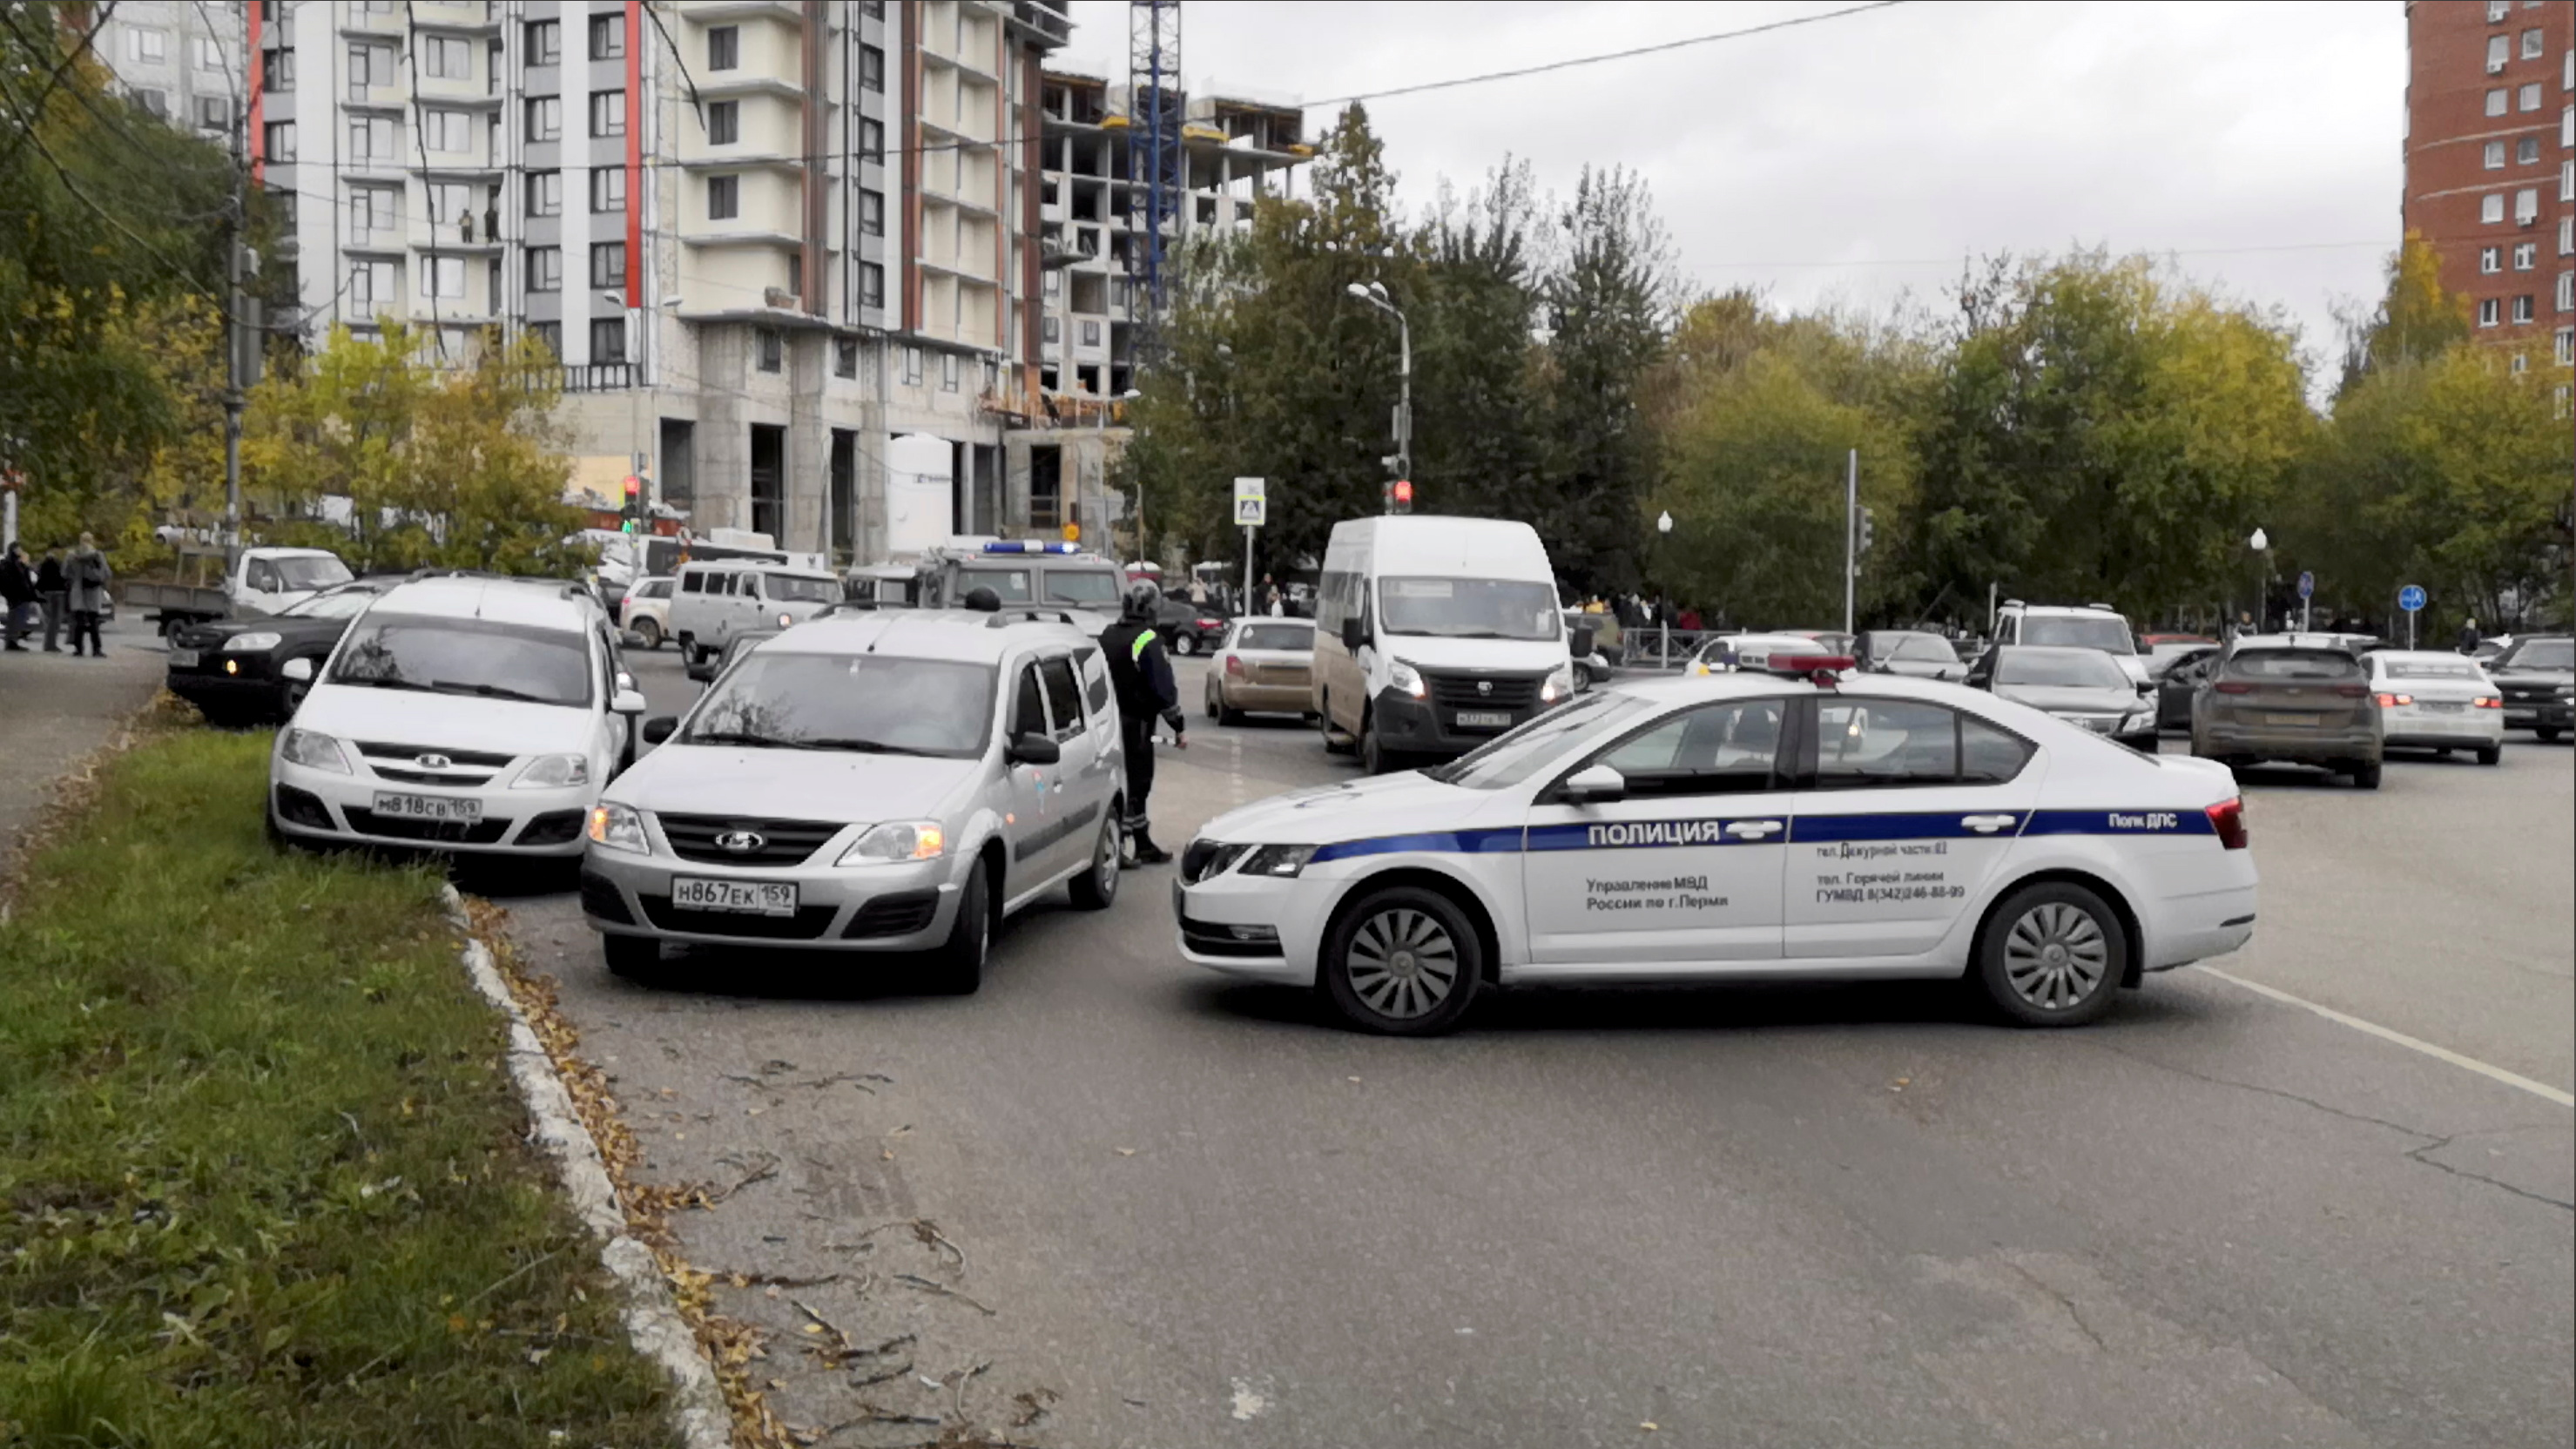 Police block the road near the scene after a gunman opened fire at the Perm State University in Perm, Russia September 20, 2021, in this still image taken from video. REUTERS/Anna Vikhareva